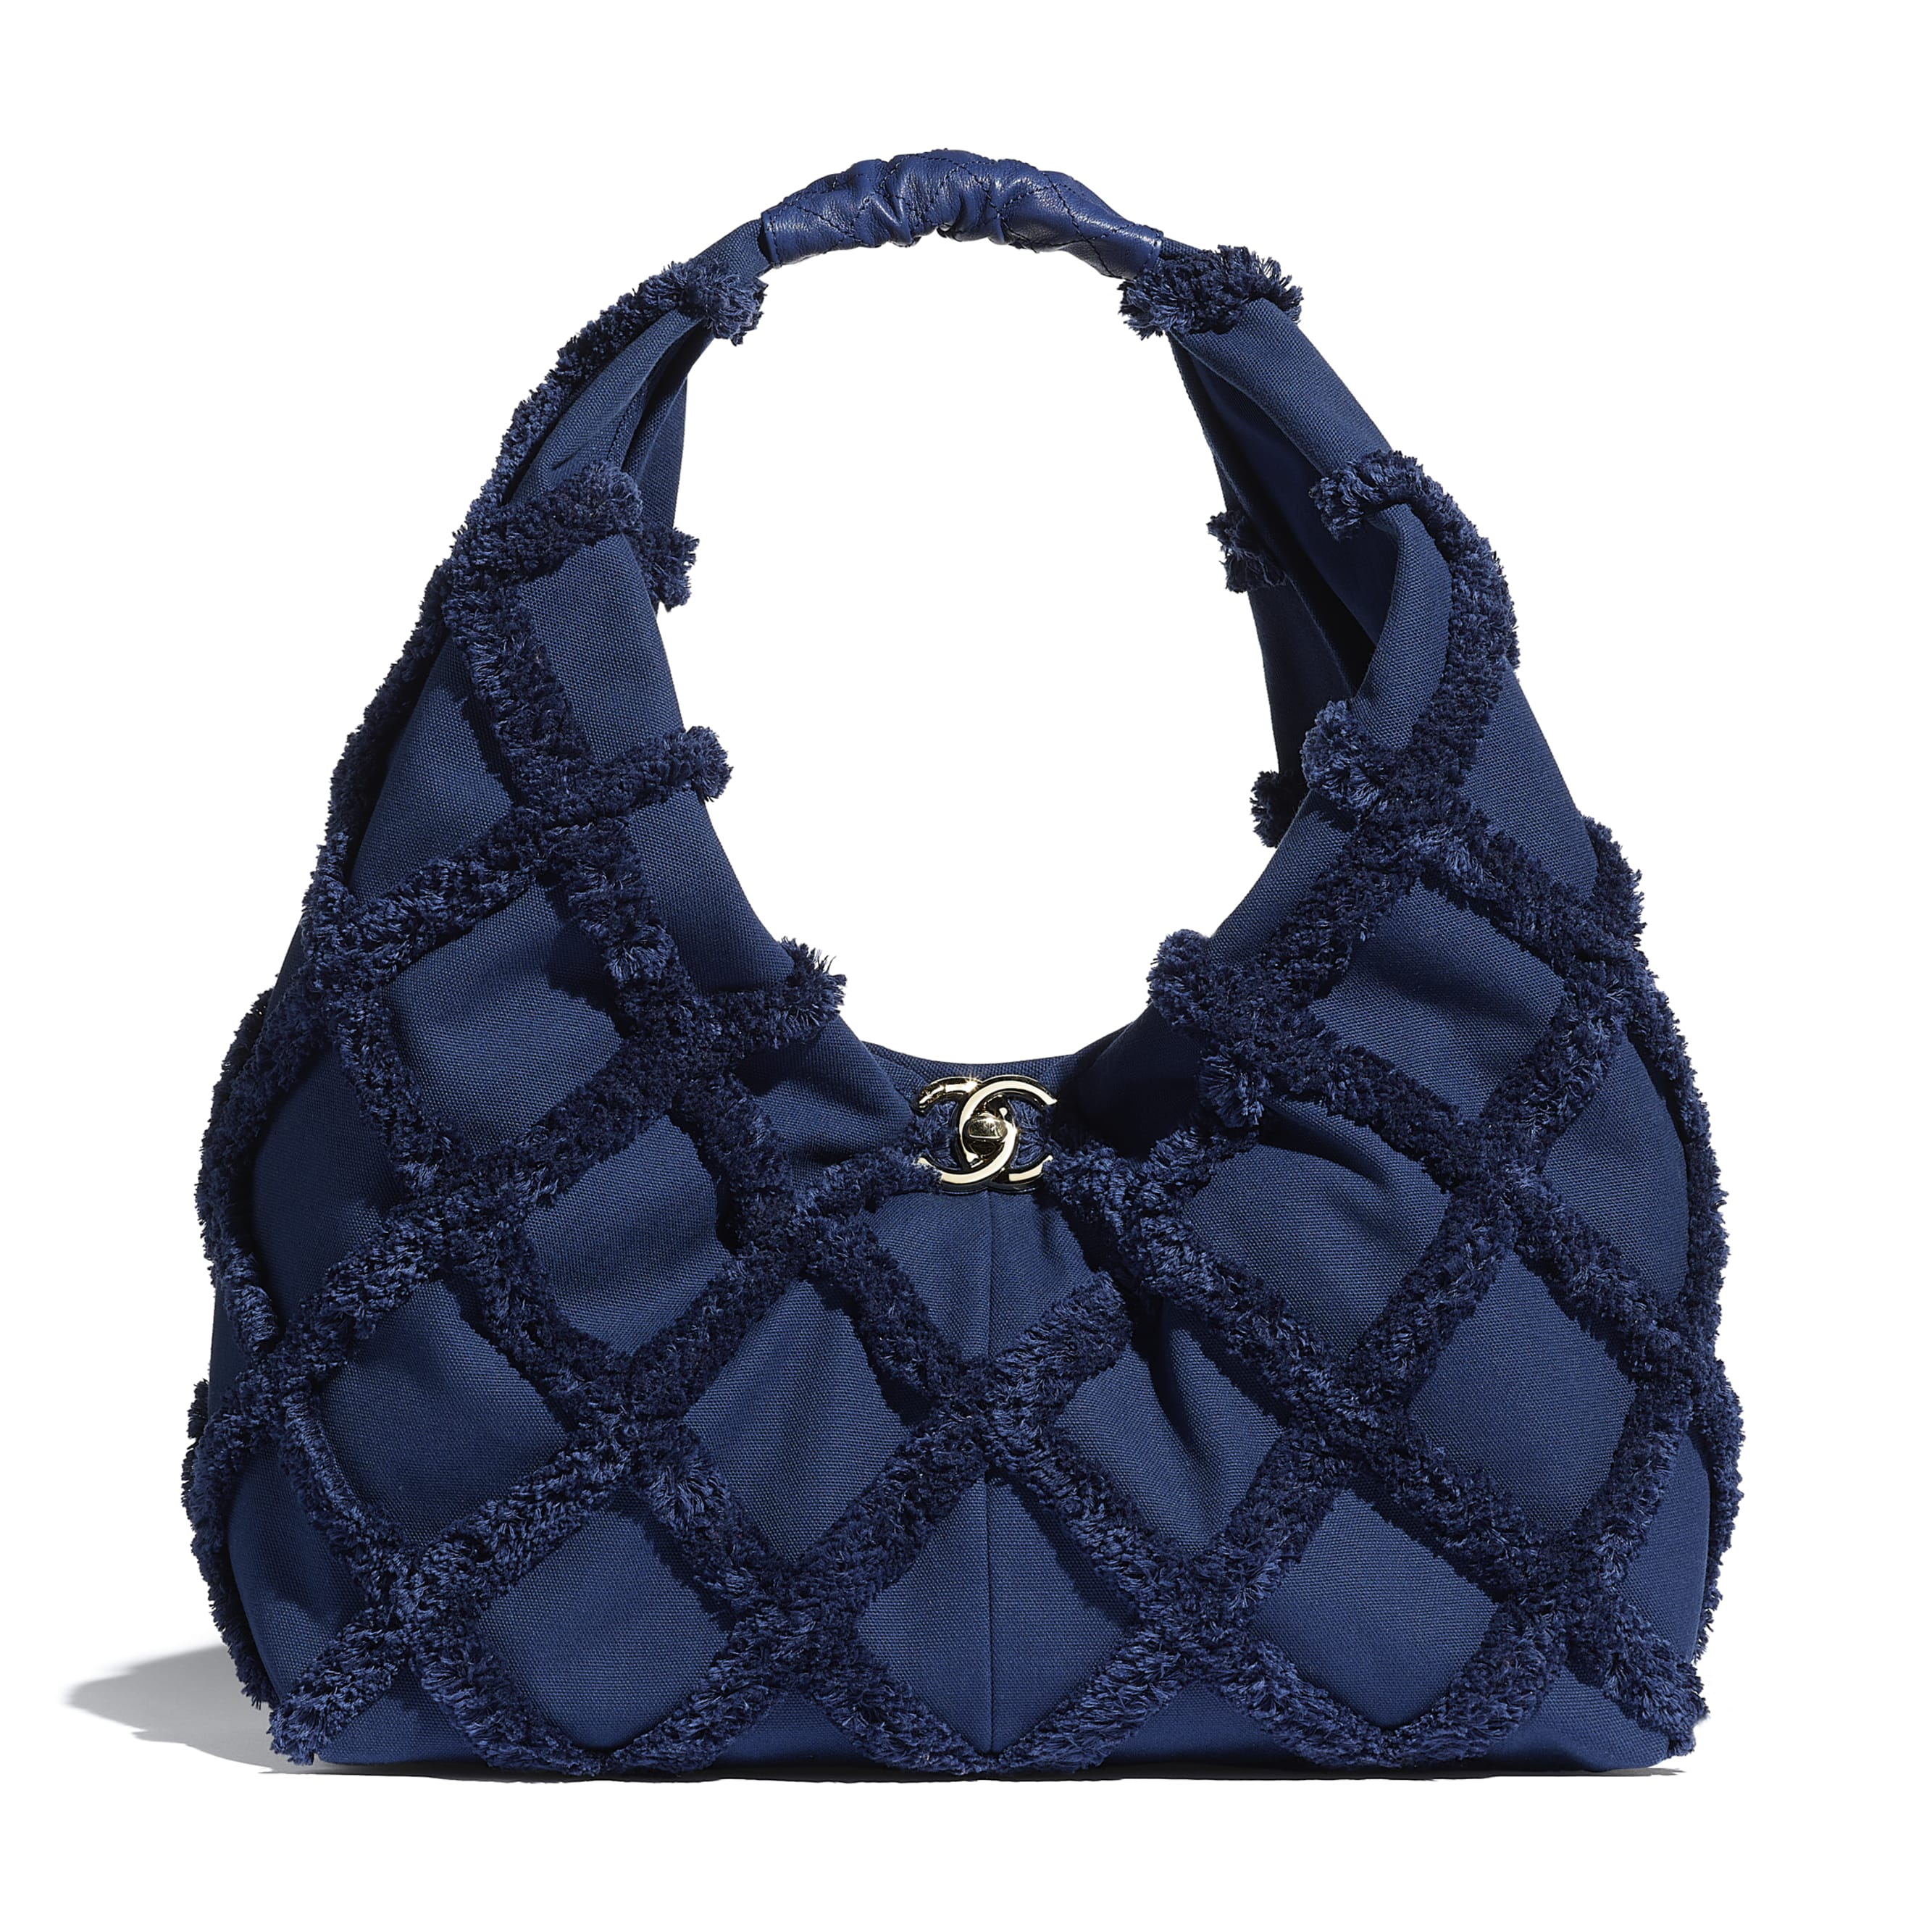 Large Hobo Bag - Navy Blue - Cotton Canvas, Calfskin & Gold-Tone Metal - CHANEL - Default view - see standard sized version